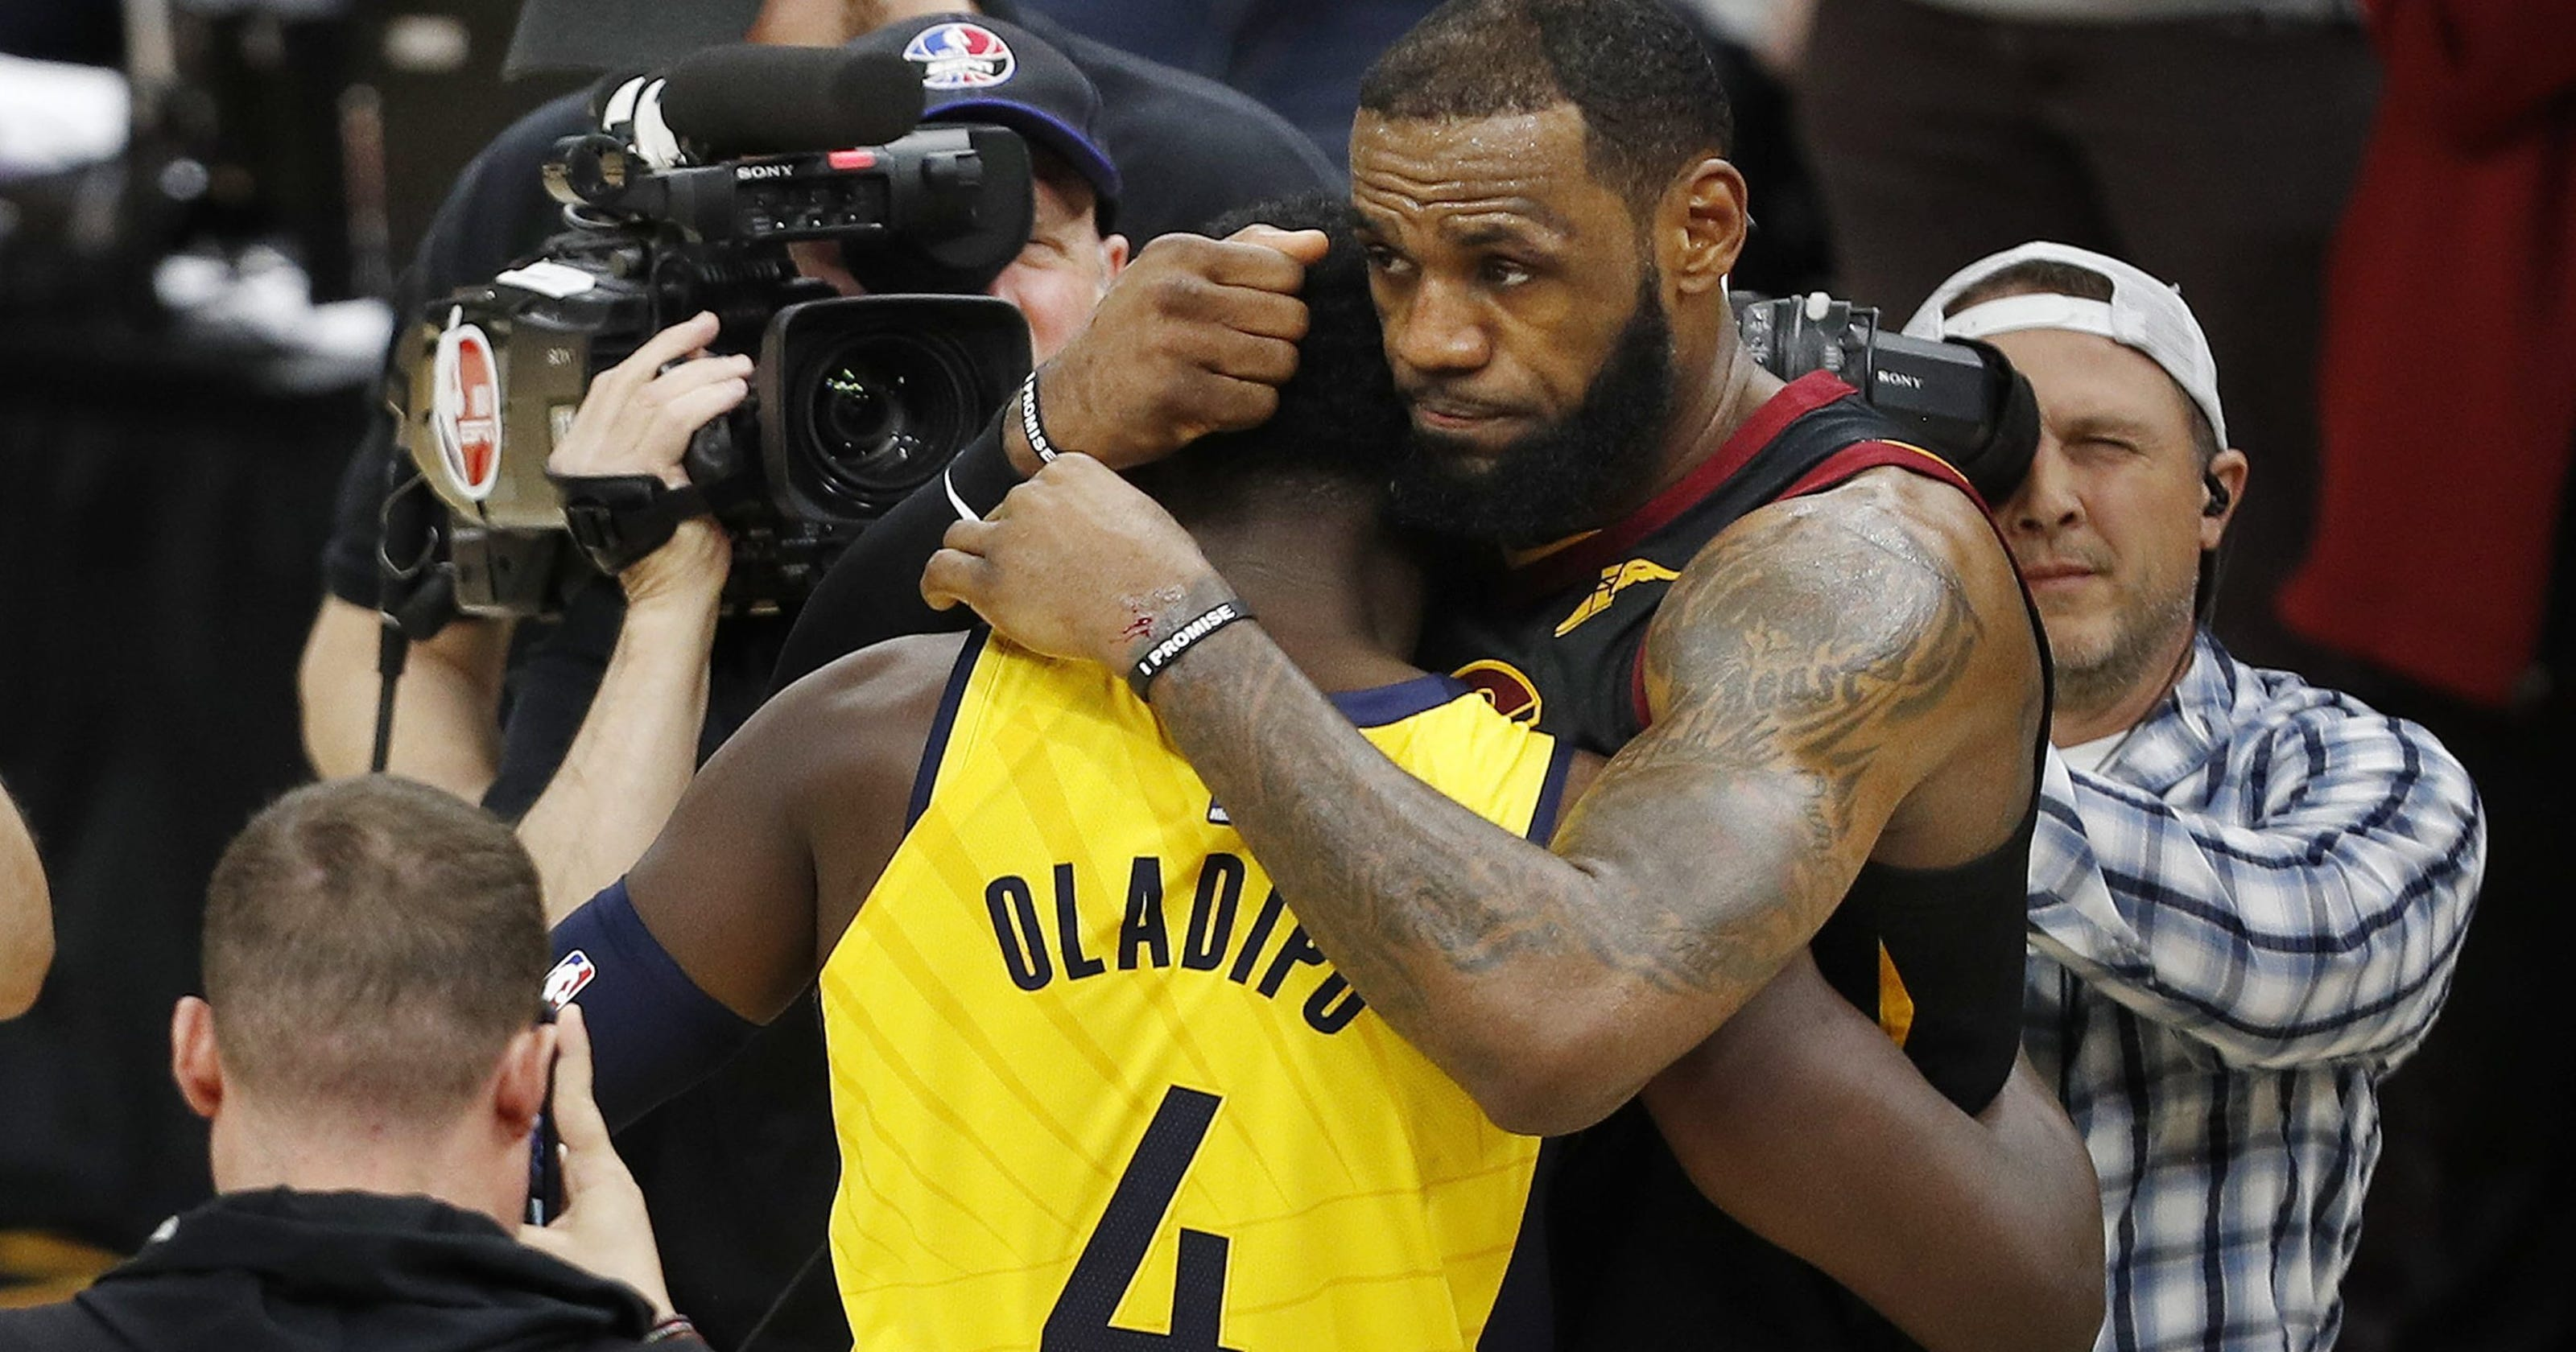 Victor Oladipo says he'll never get over LeBron's uncalled goaltending